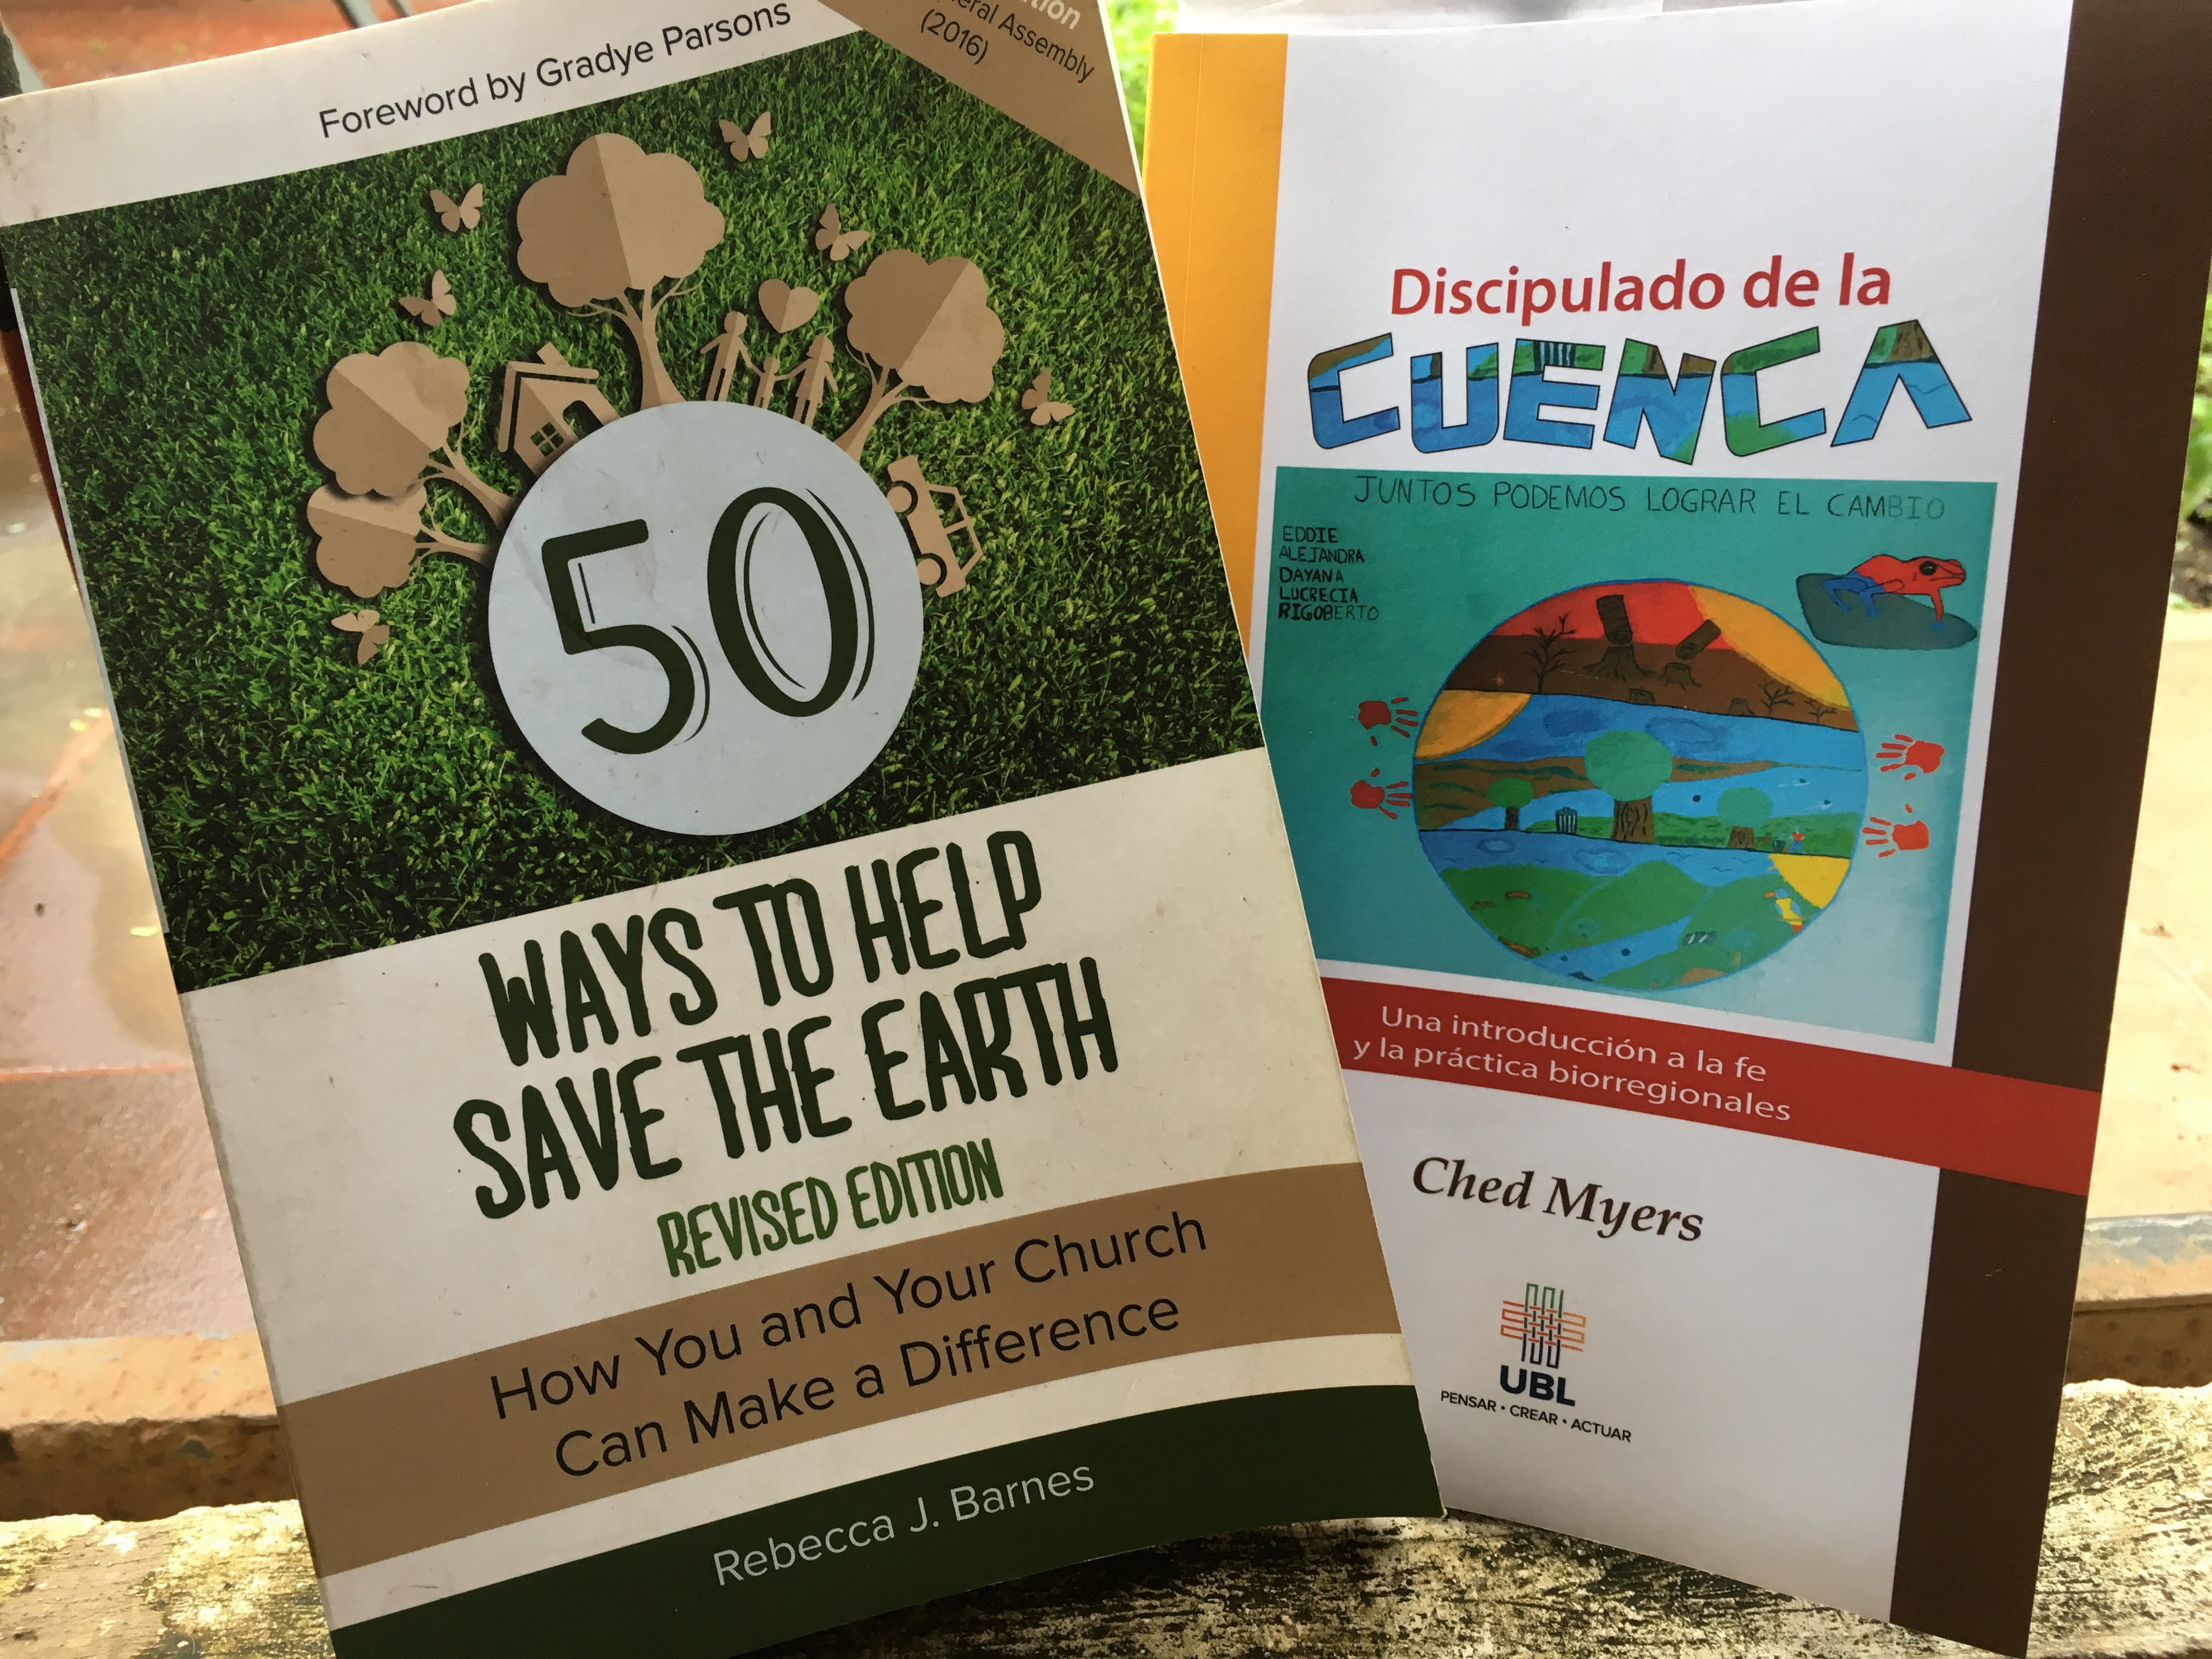 Literature on caring for the planet.